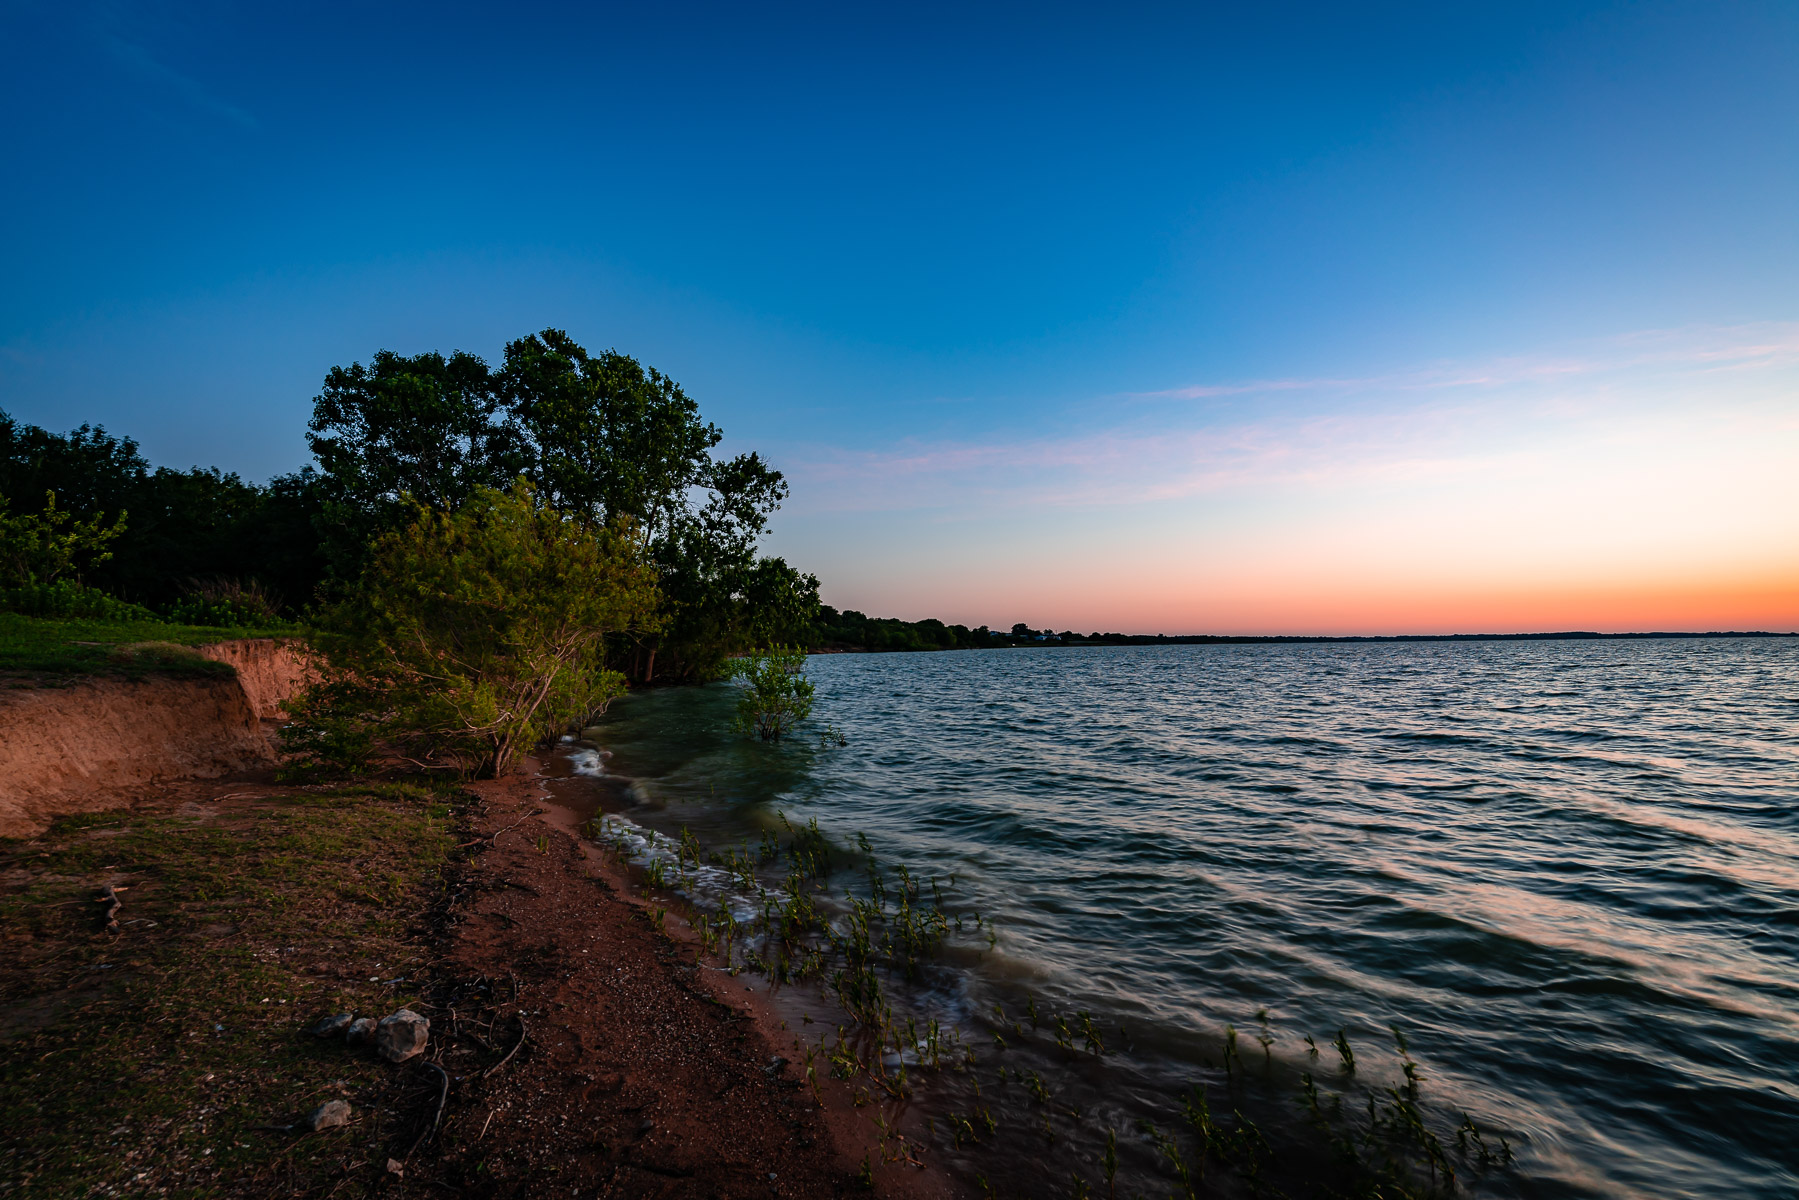 Early morning on the shore of North Texas' Lake Lavon.